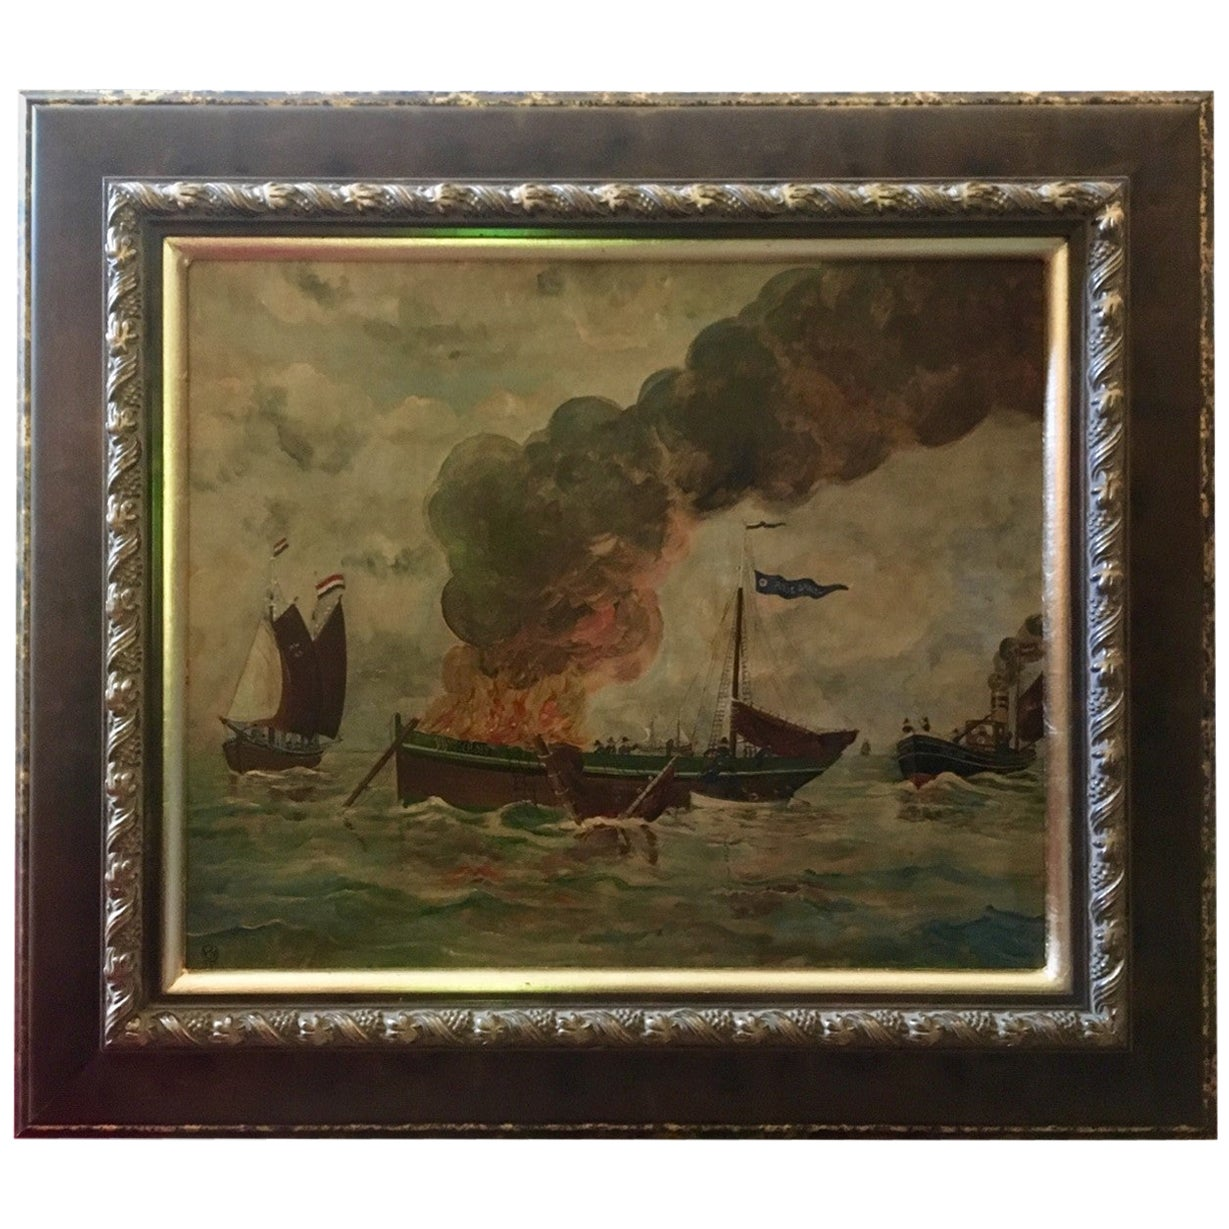 Dutch Folk Art Oil Painting Dramatic Seascape, Monogram and Dated